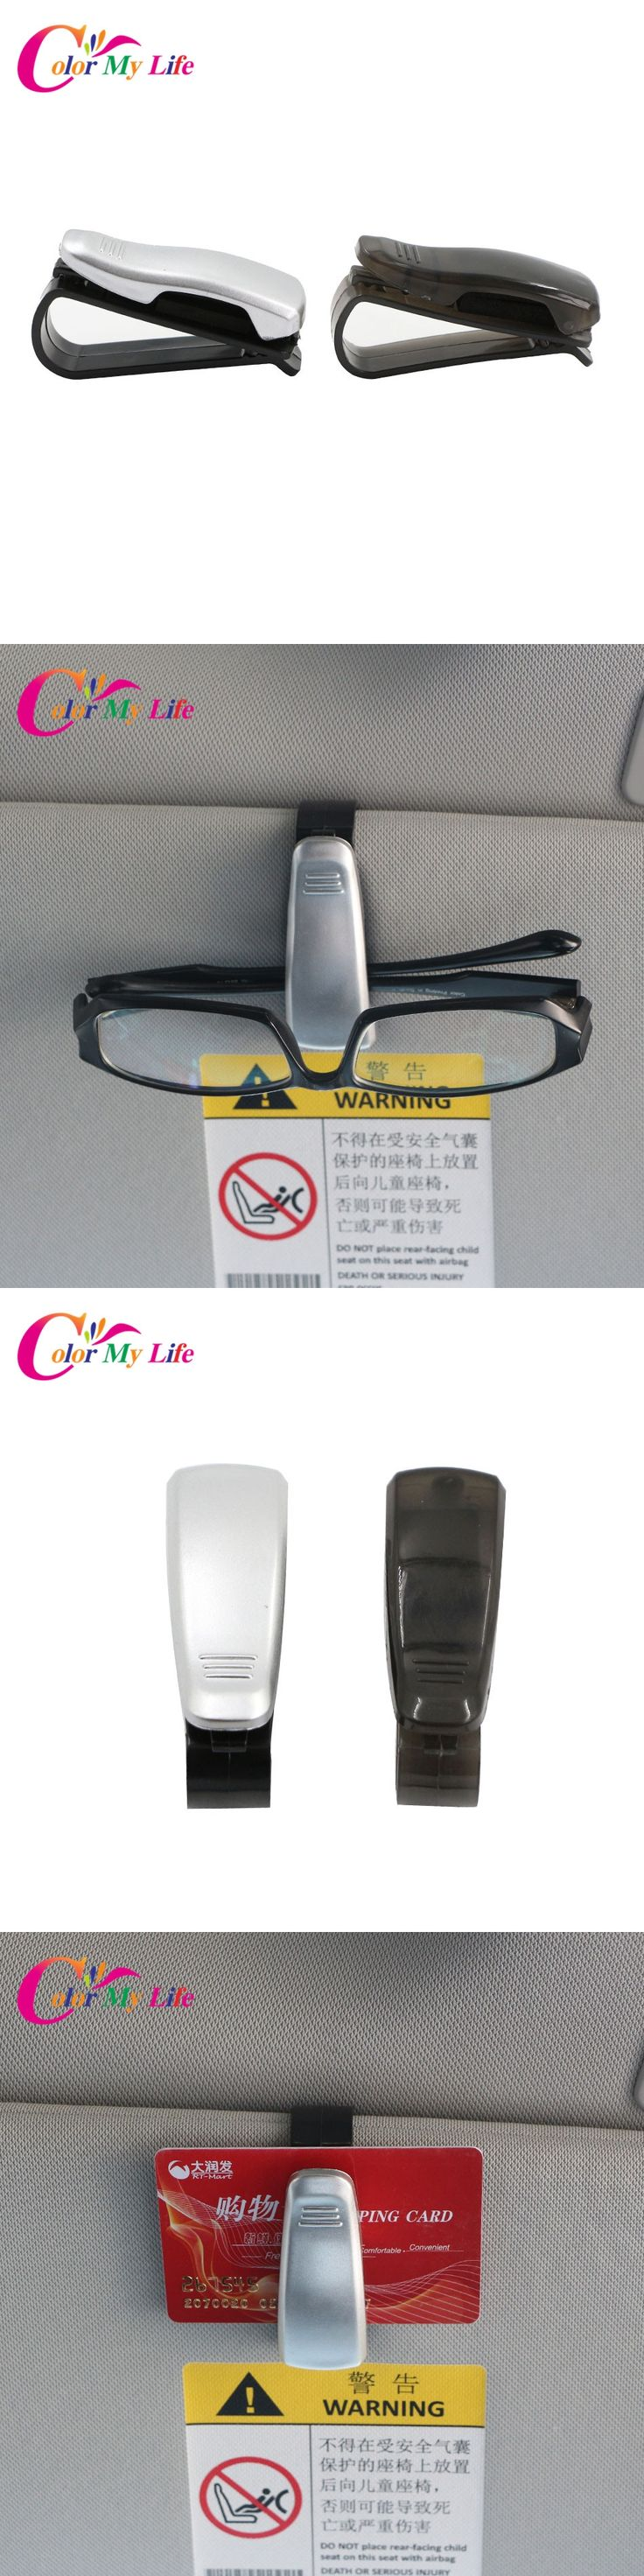 1 Piece ABS Car Glasses Holder Card Ticket Holder Clip for Opel Insignia Corsa Zafira Vectra Antara Tigra Meriva